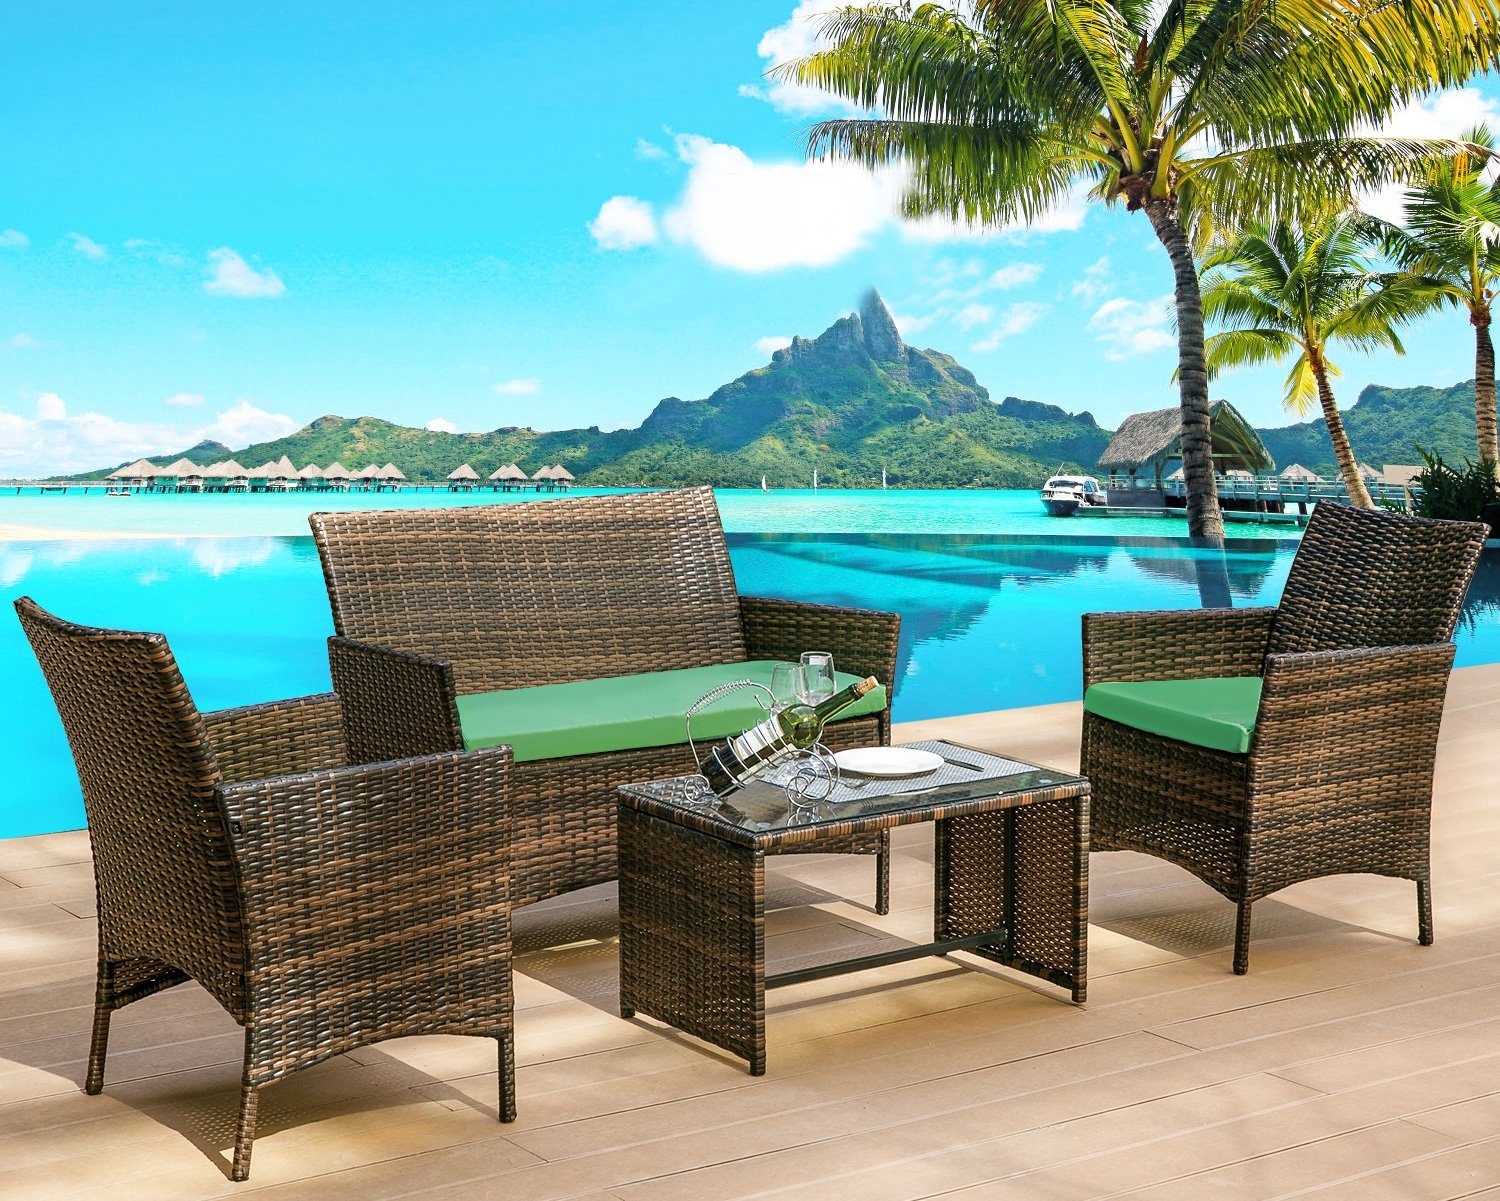 Leisure Zone 4 PC Rattan Patio Furniture Set Wicker Conversation Set Garden Lawn Outdoor Sofa Set with Cushioned Seat and Tempered Glass Table Top (Cushion Green) - 【Solid Construction】This 4 PC patio furniture set is crafted of powder coated metal frame and PE rattan wicker, which is weather-resistant and UV protected for lasting style to stand up to the elements. 【Ultimate Comfort】Come with thick padded seat cushions for comfort and relaxation, wide and deep chairs offer much room to seat comfortably. 【Easy to clean】This coffee table with tempered glass adds a sophisticated touch. It is easy to clean the table top if any tea or coffee drops on it. - patio-furniture, patio, conversation-sets - 81lMtg06TPL -